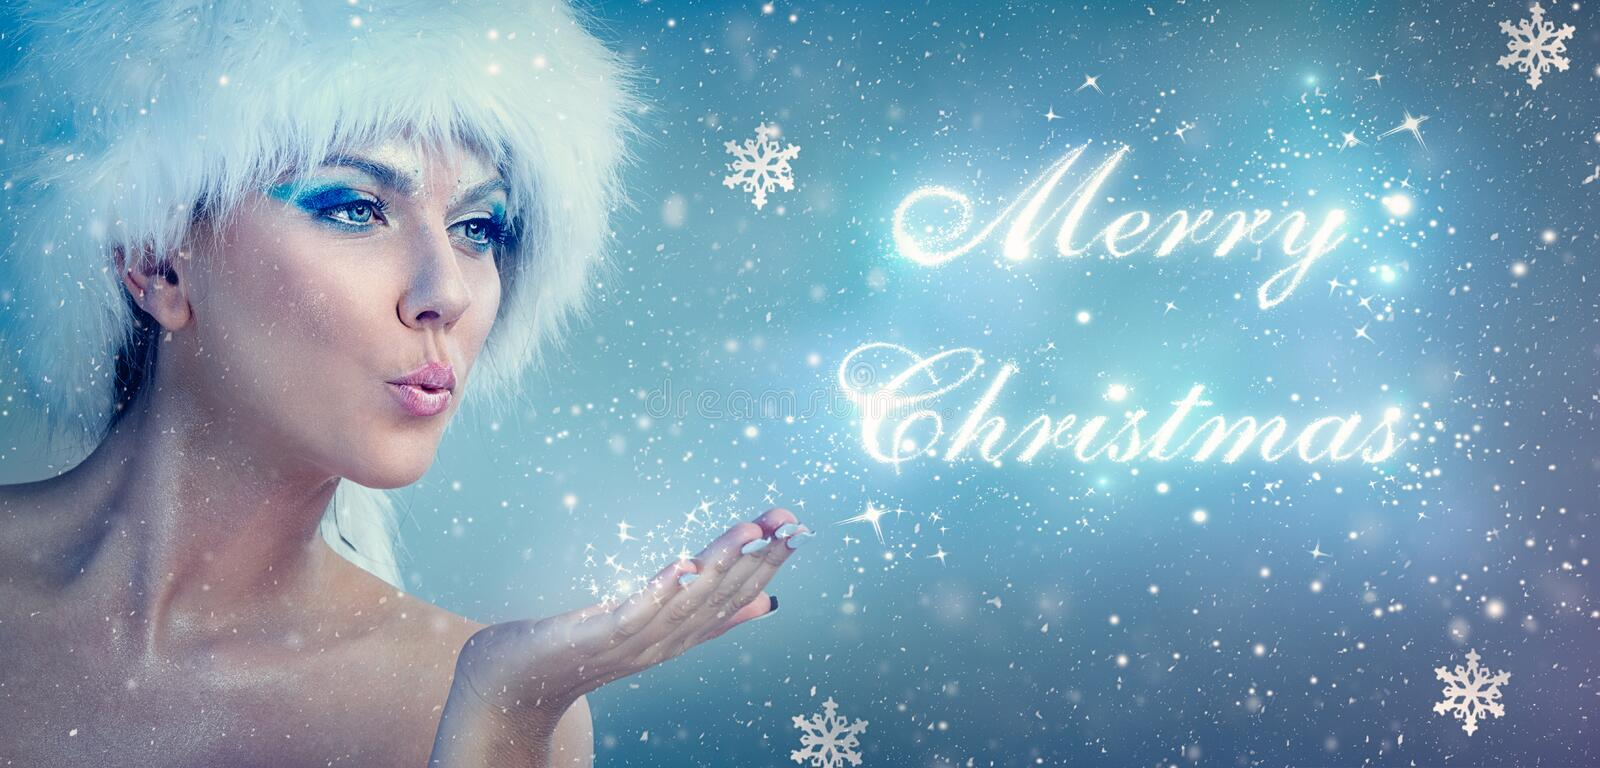 Snow queen blowing merry christmas royalty free stock photos